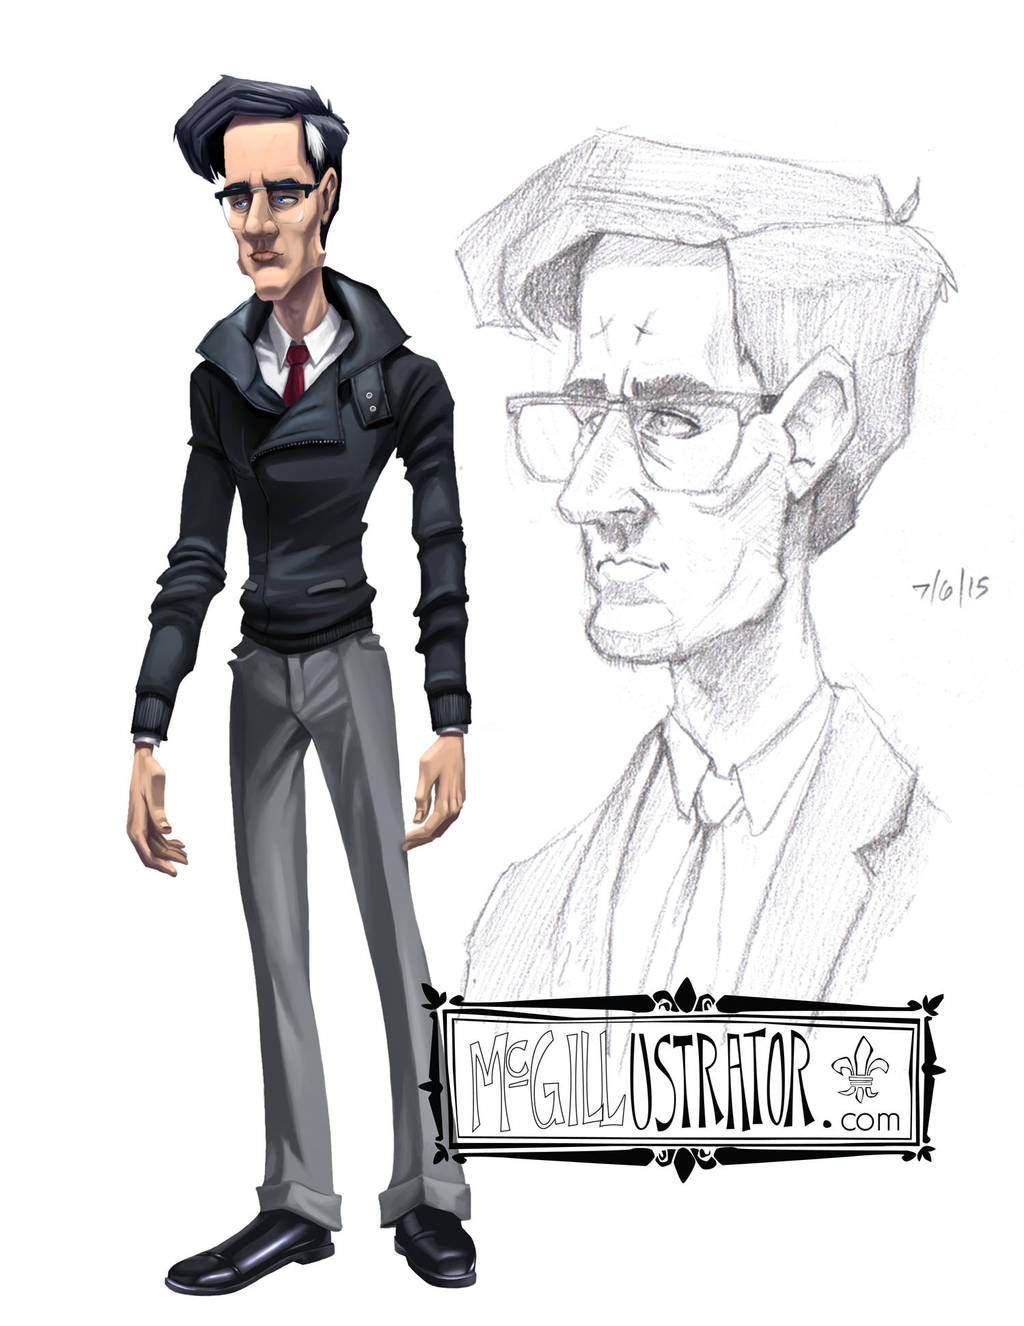 OC Character Concept by McGillustrator